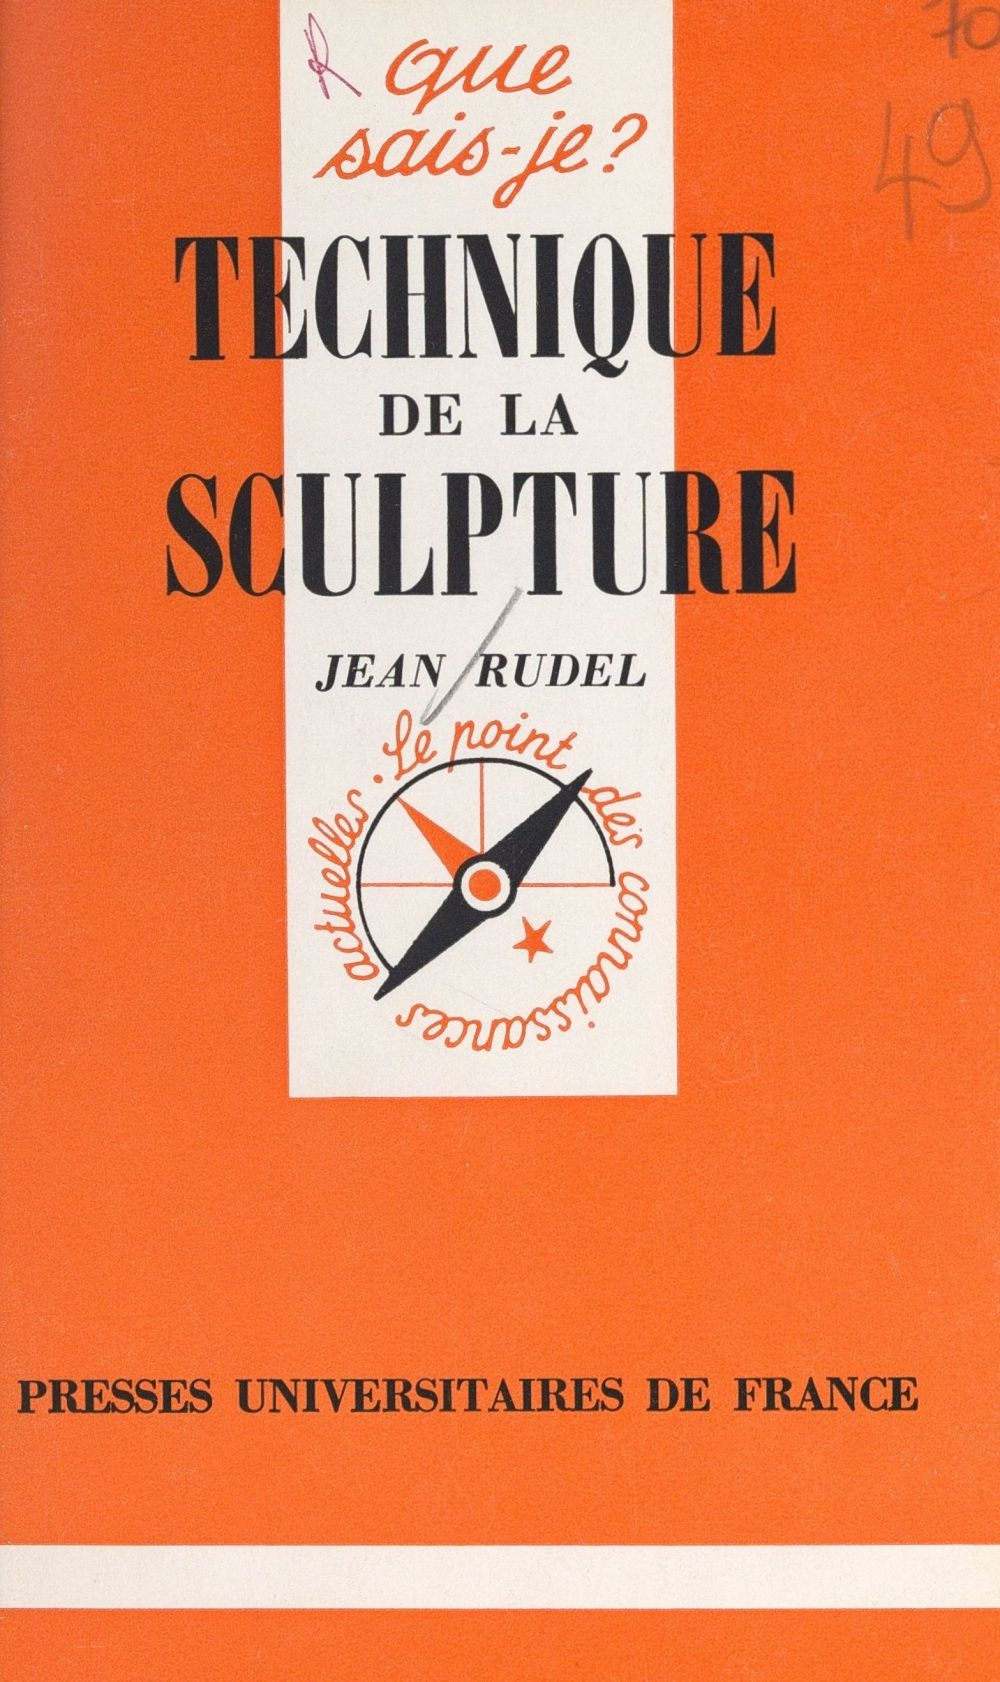 Technique de la sculpture